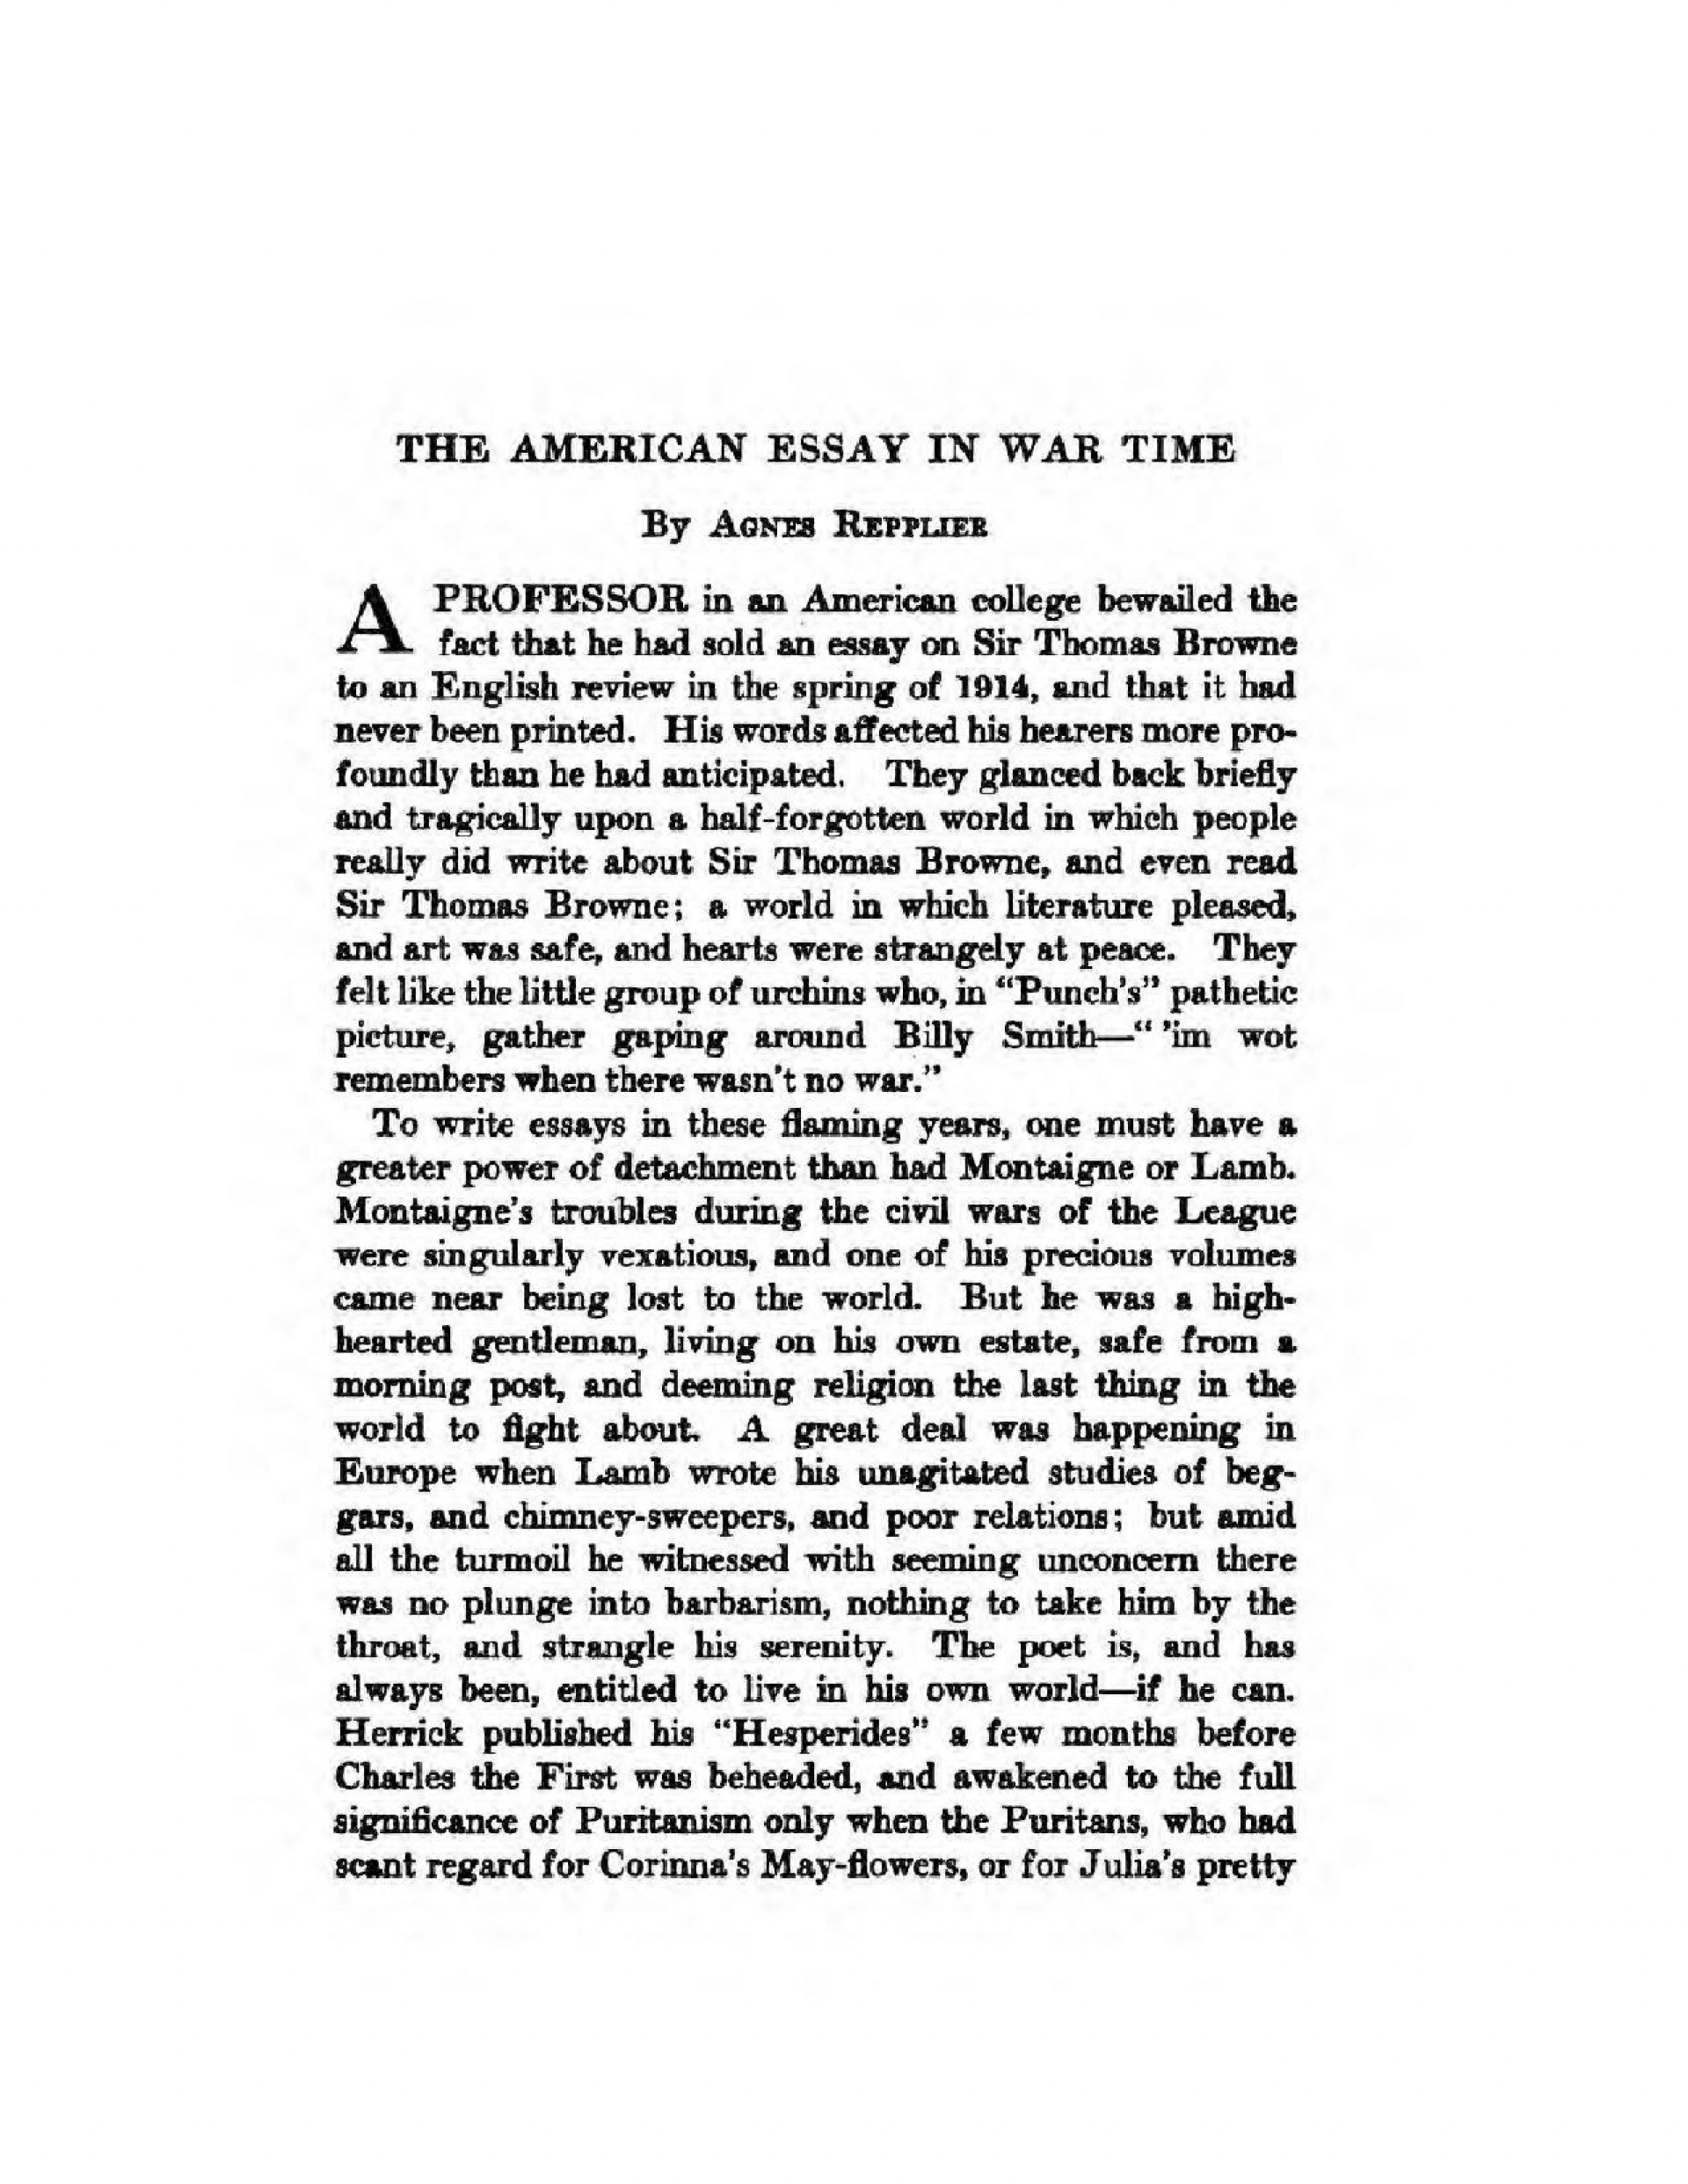 009 Essay Example What Is An American Page1 1275px The In War Time2c Agnes Repplier2c 1918 Stupendous Ideas Definition Crevecoeur Summary 1920